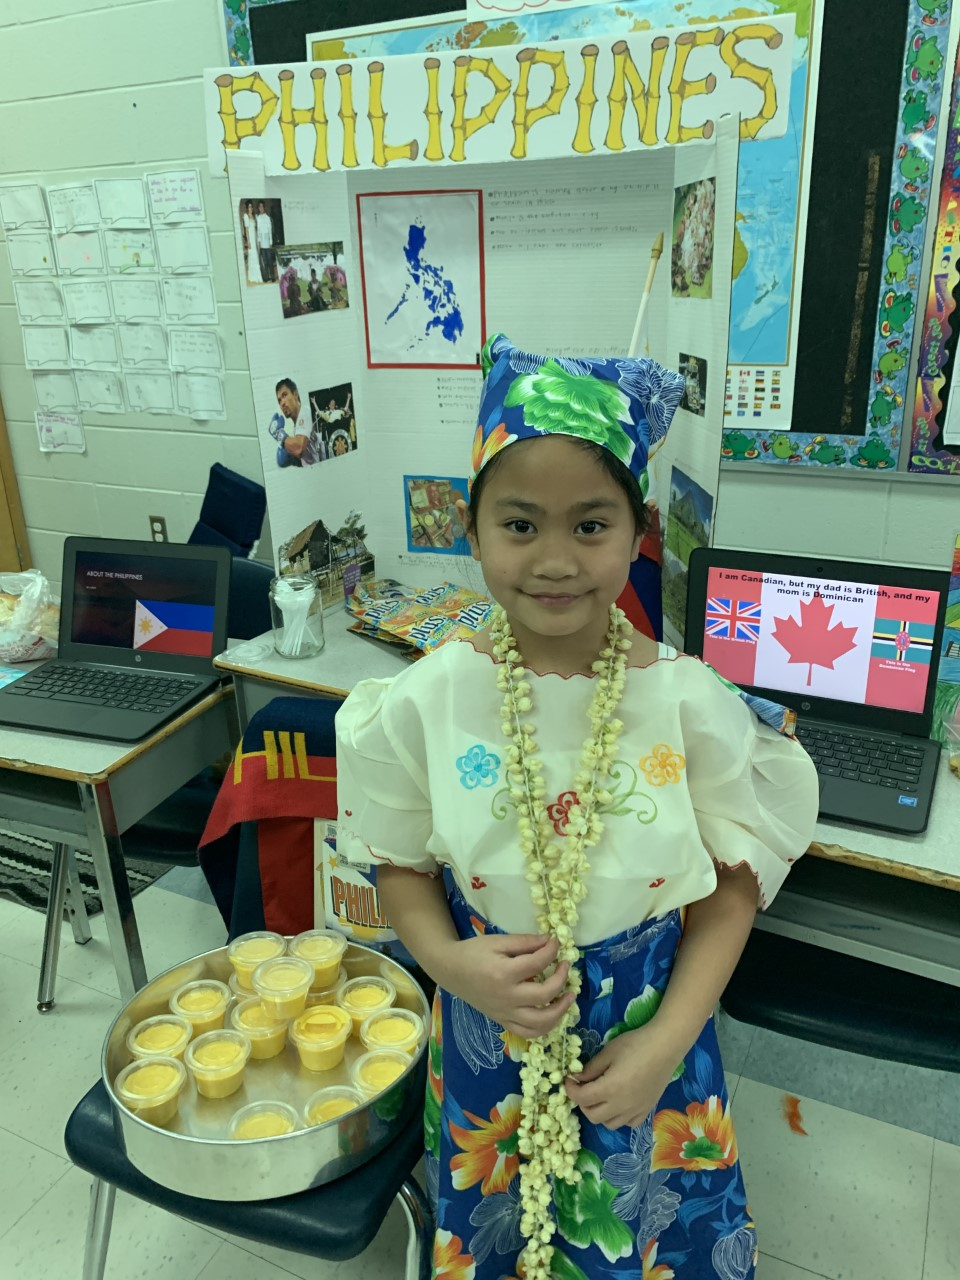 Female student dressed in traditional Philippines clothing and standing beside a desert with display in the background.